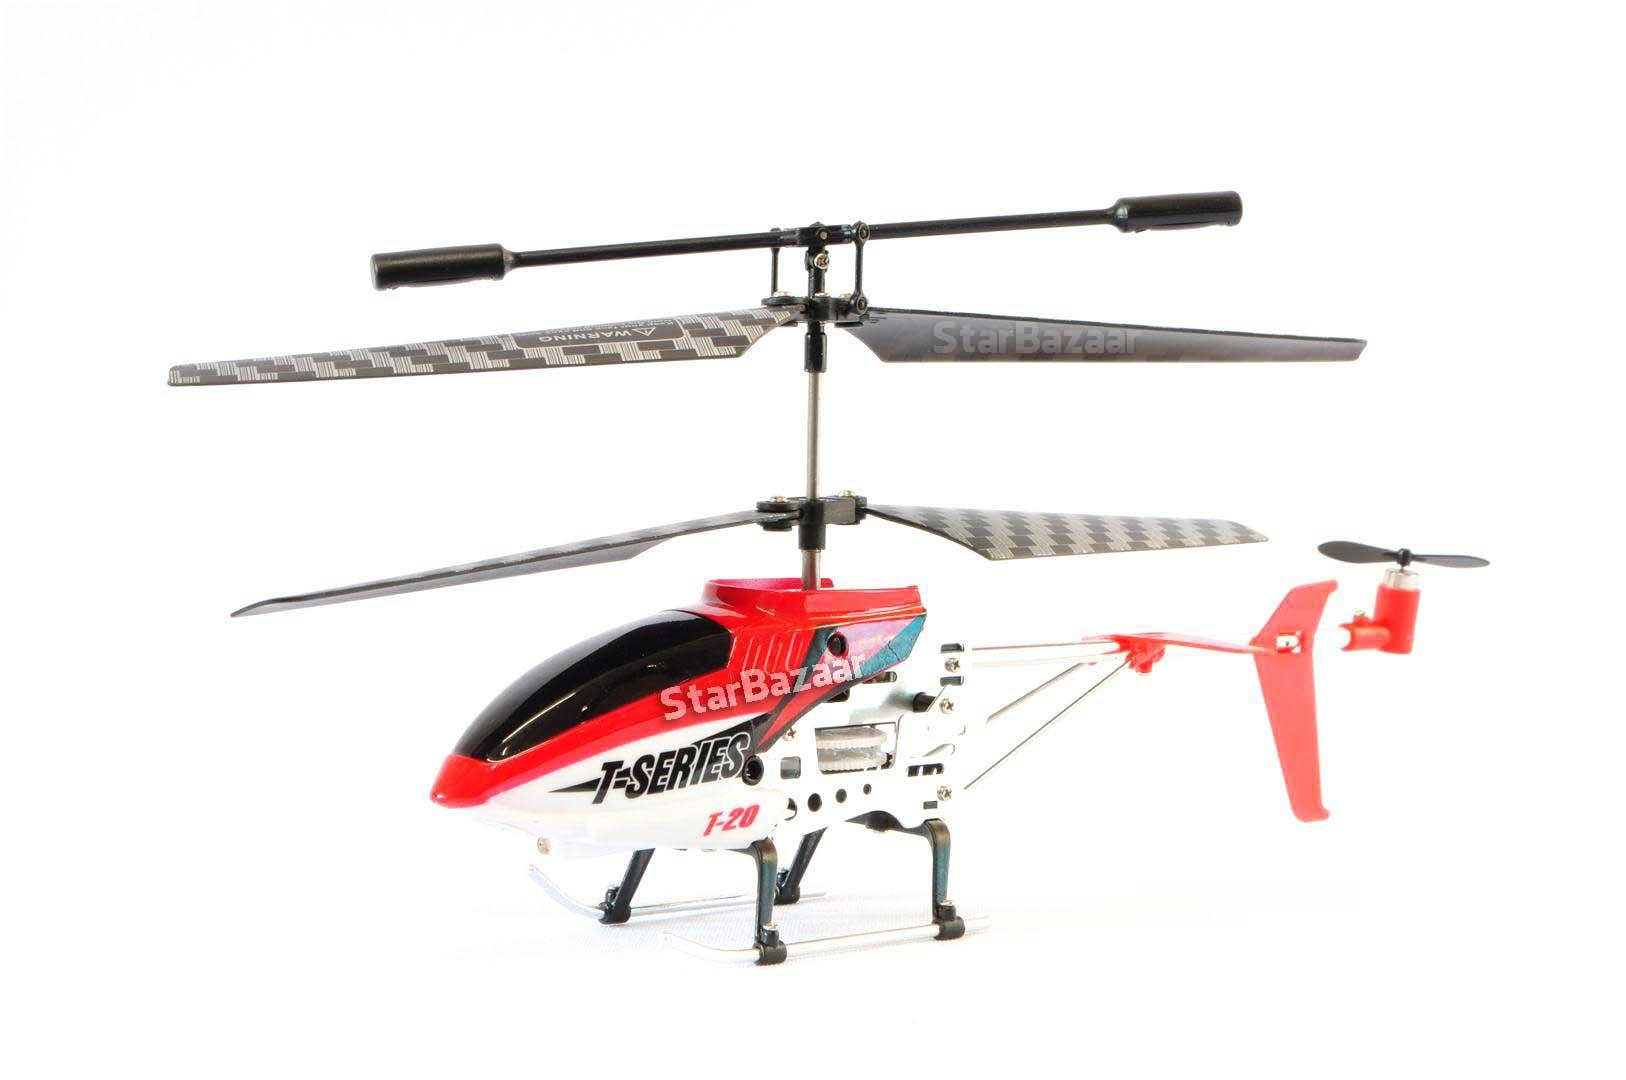 MJX T20 T620 Shuttle 3CH RC Helicopter